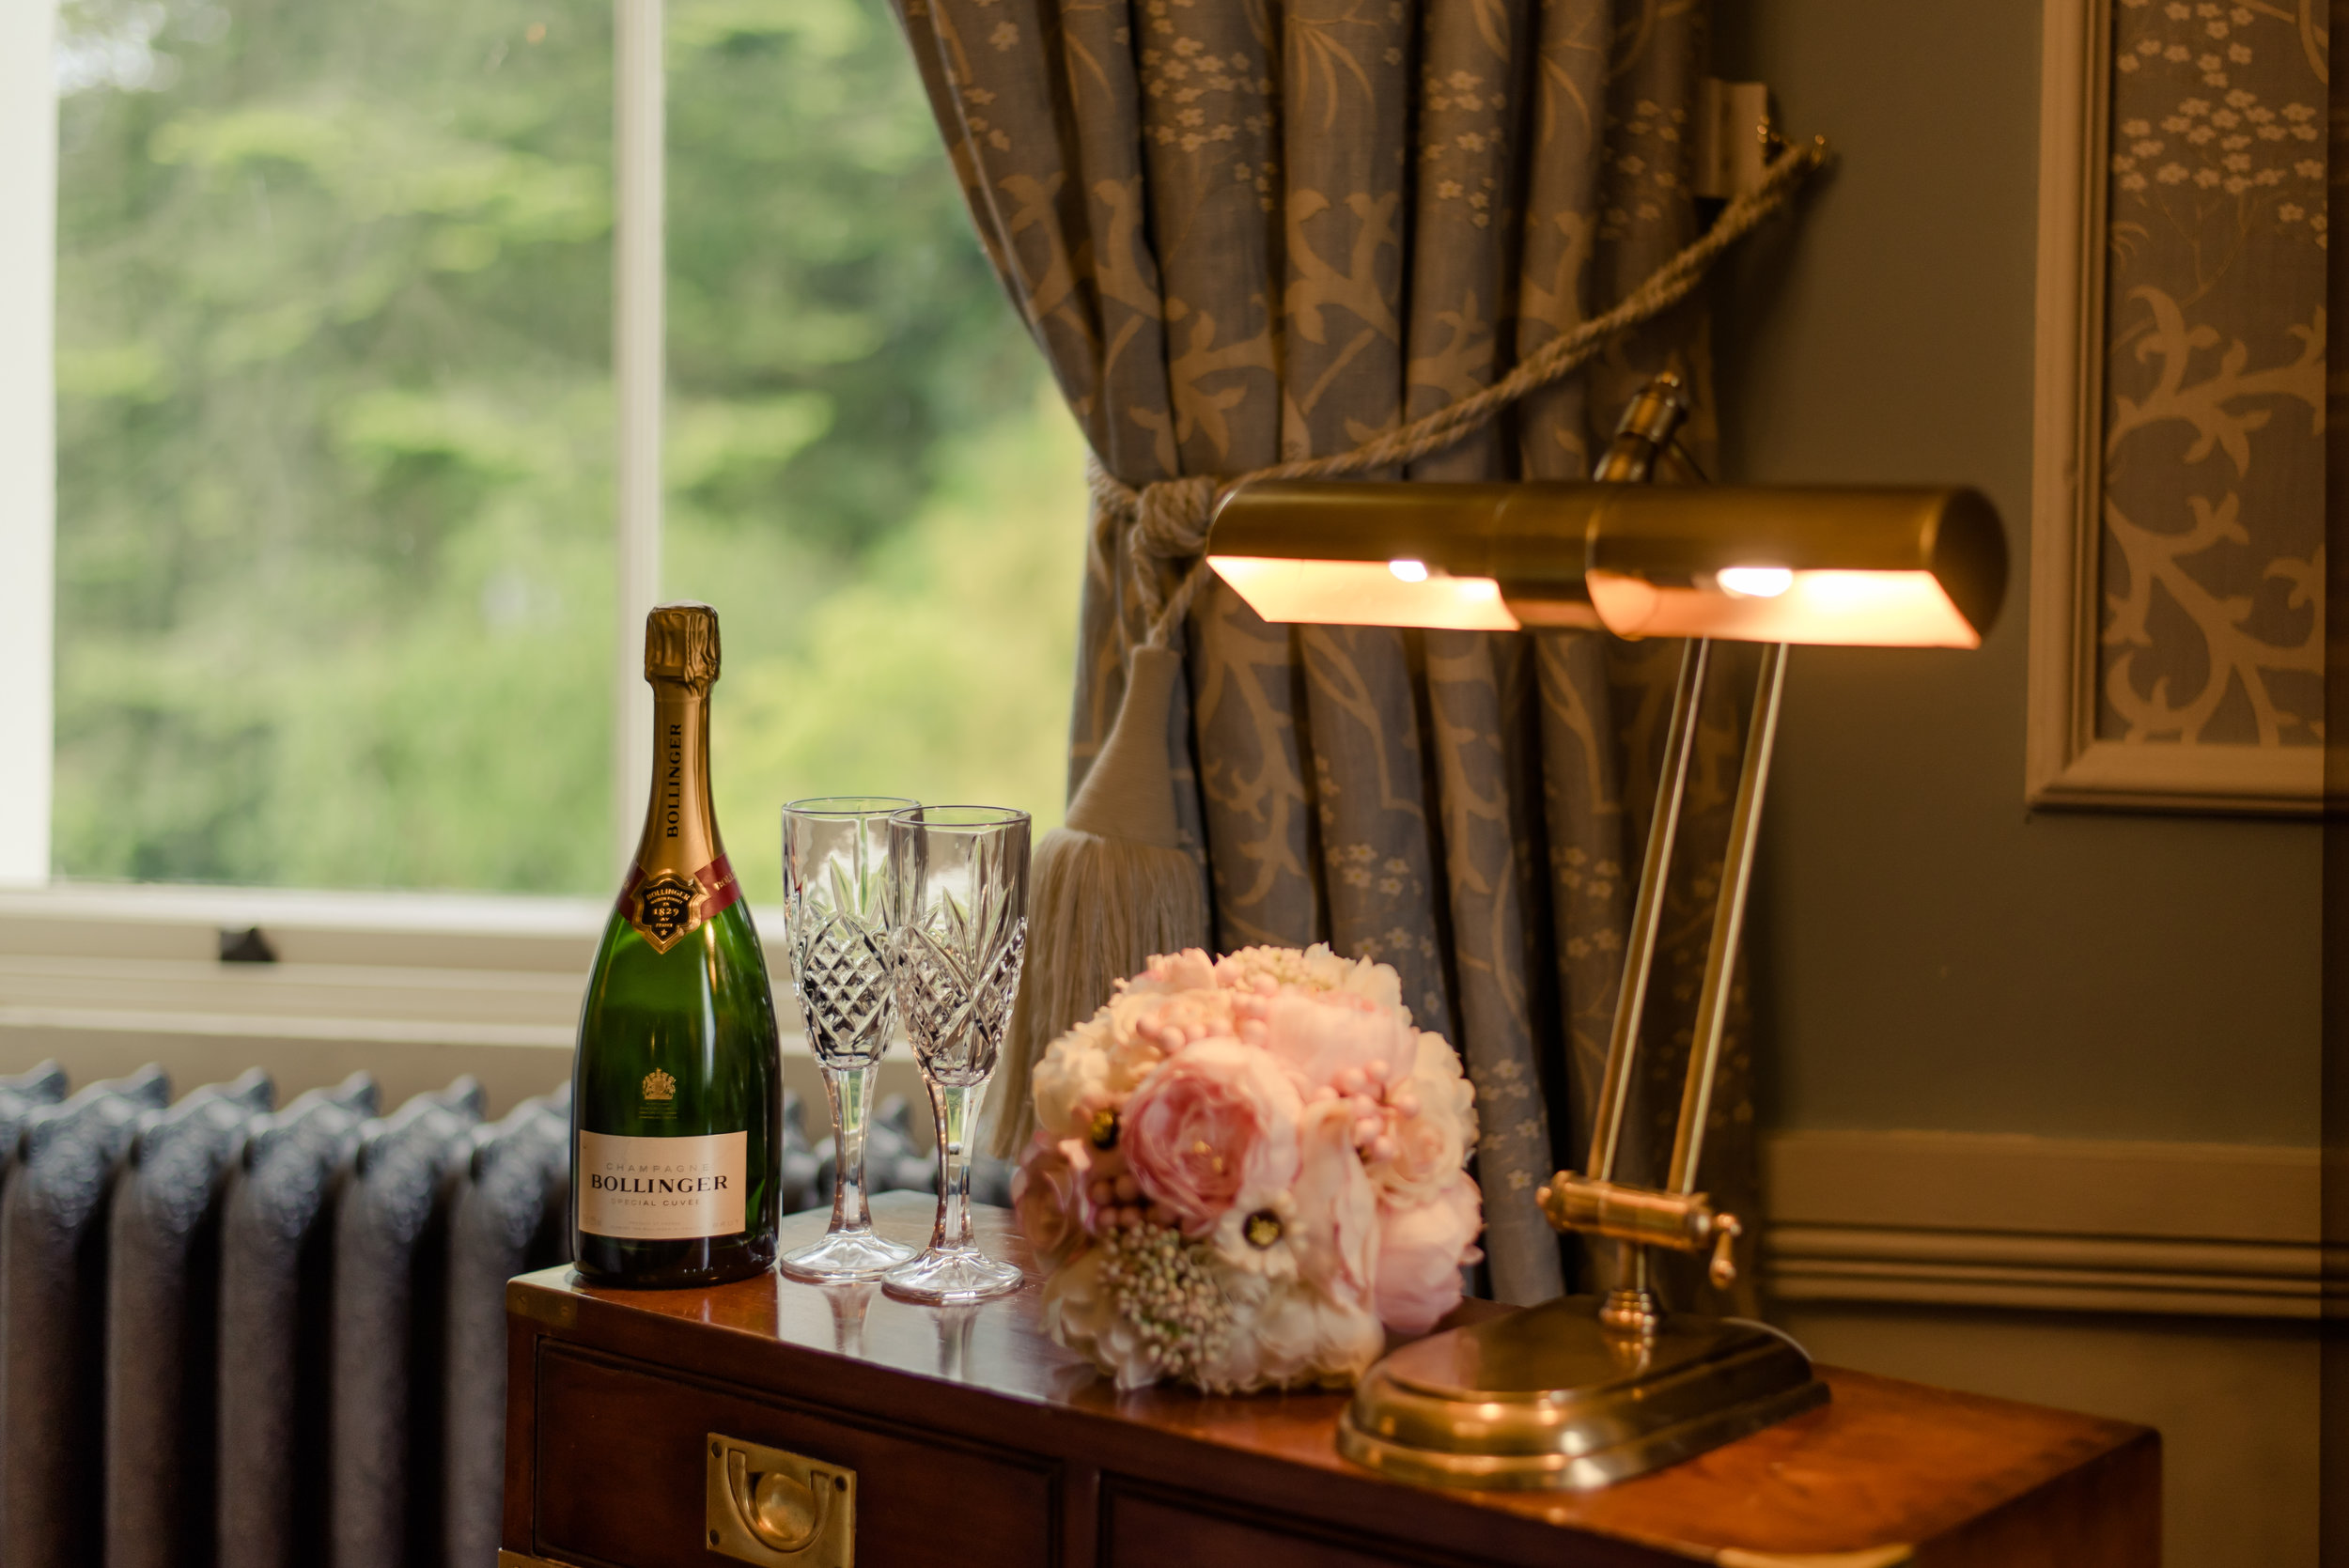 Tulfarris Hotel & Golf Resort briday suite with flowers and champagne.jpg